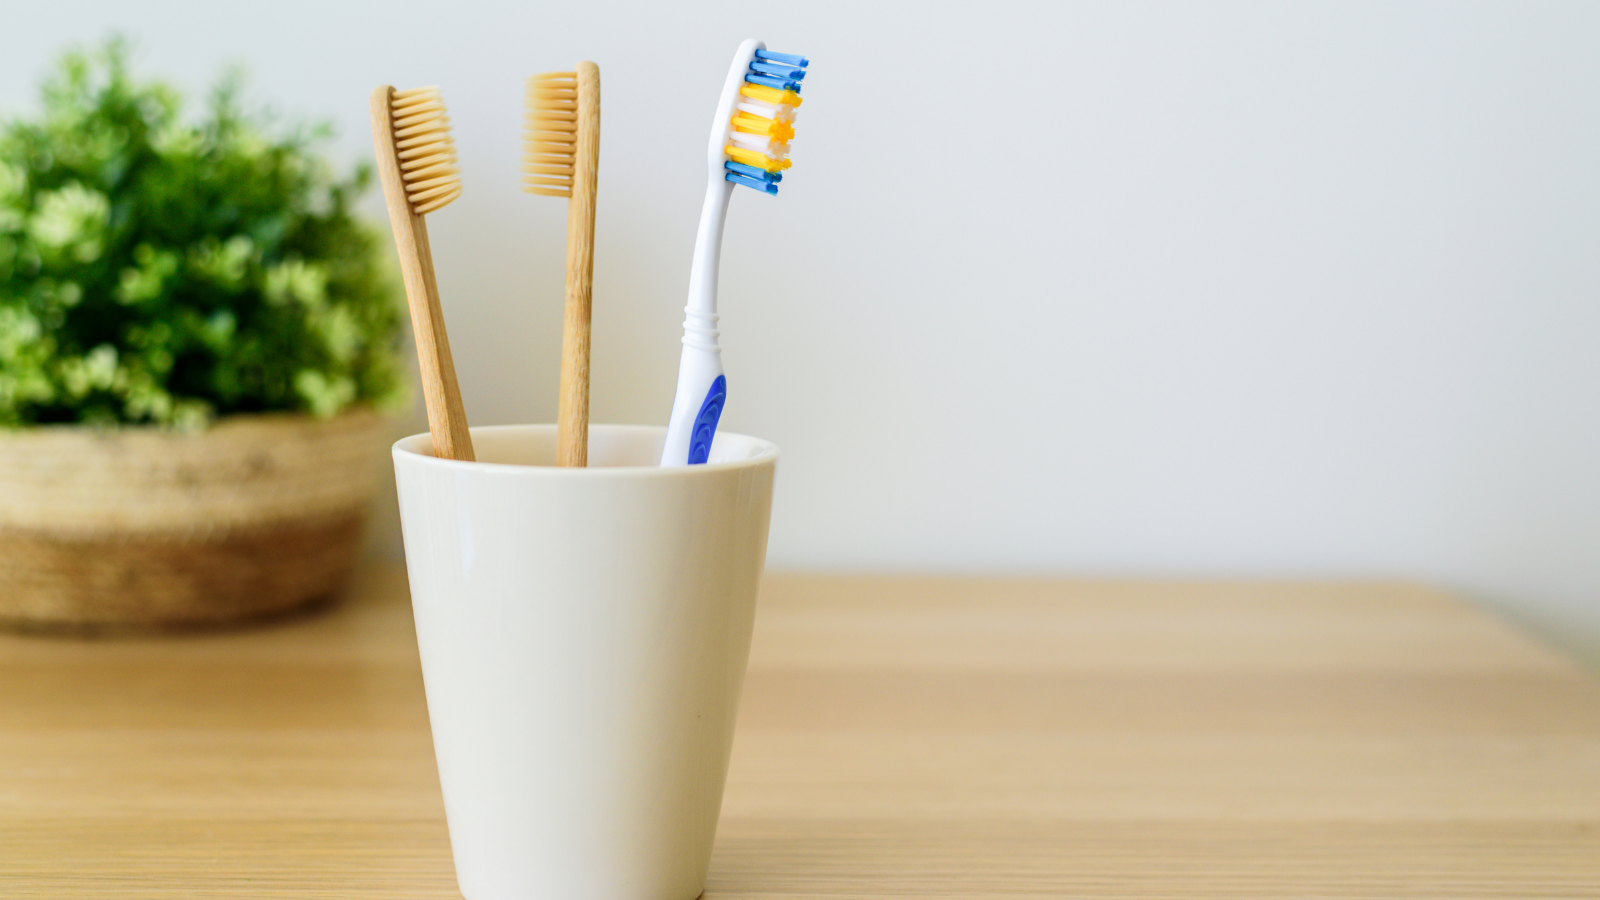 closeup of toothbrushes